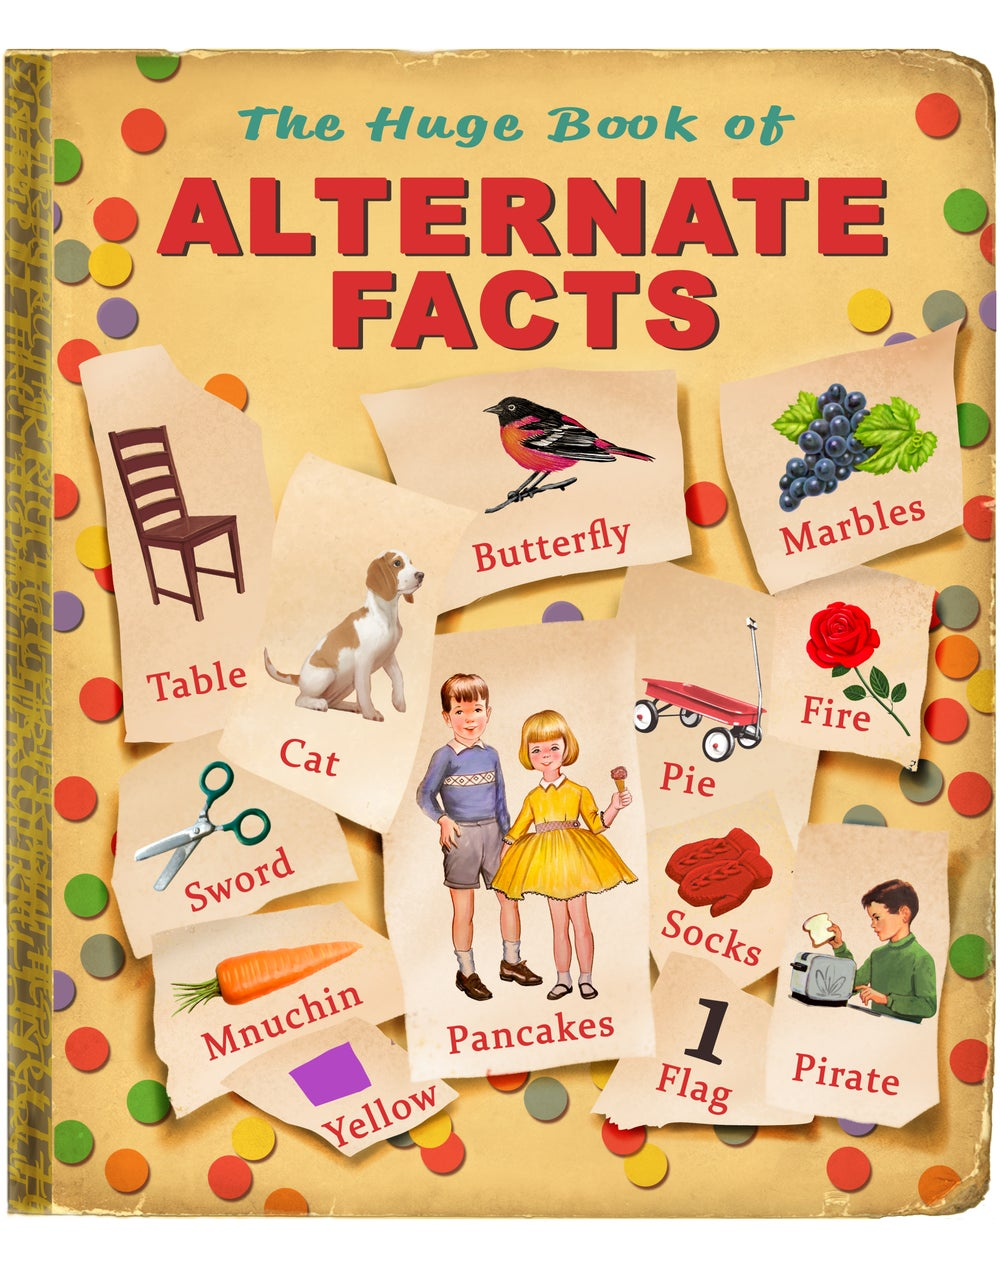 "Image of Alternate Facts 11"" X 14"" Archival Print"